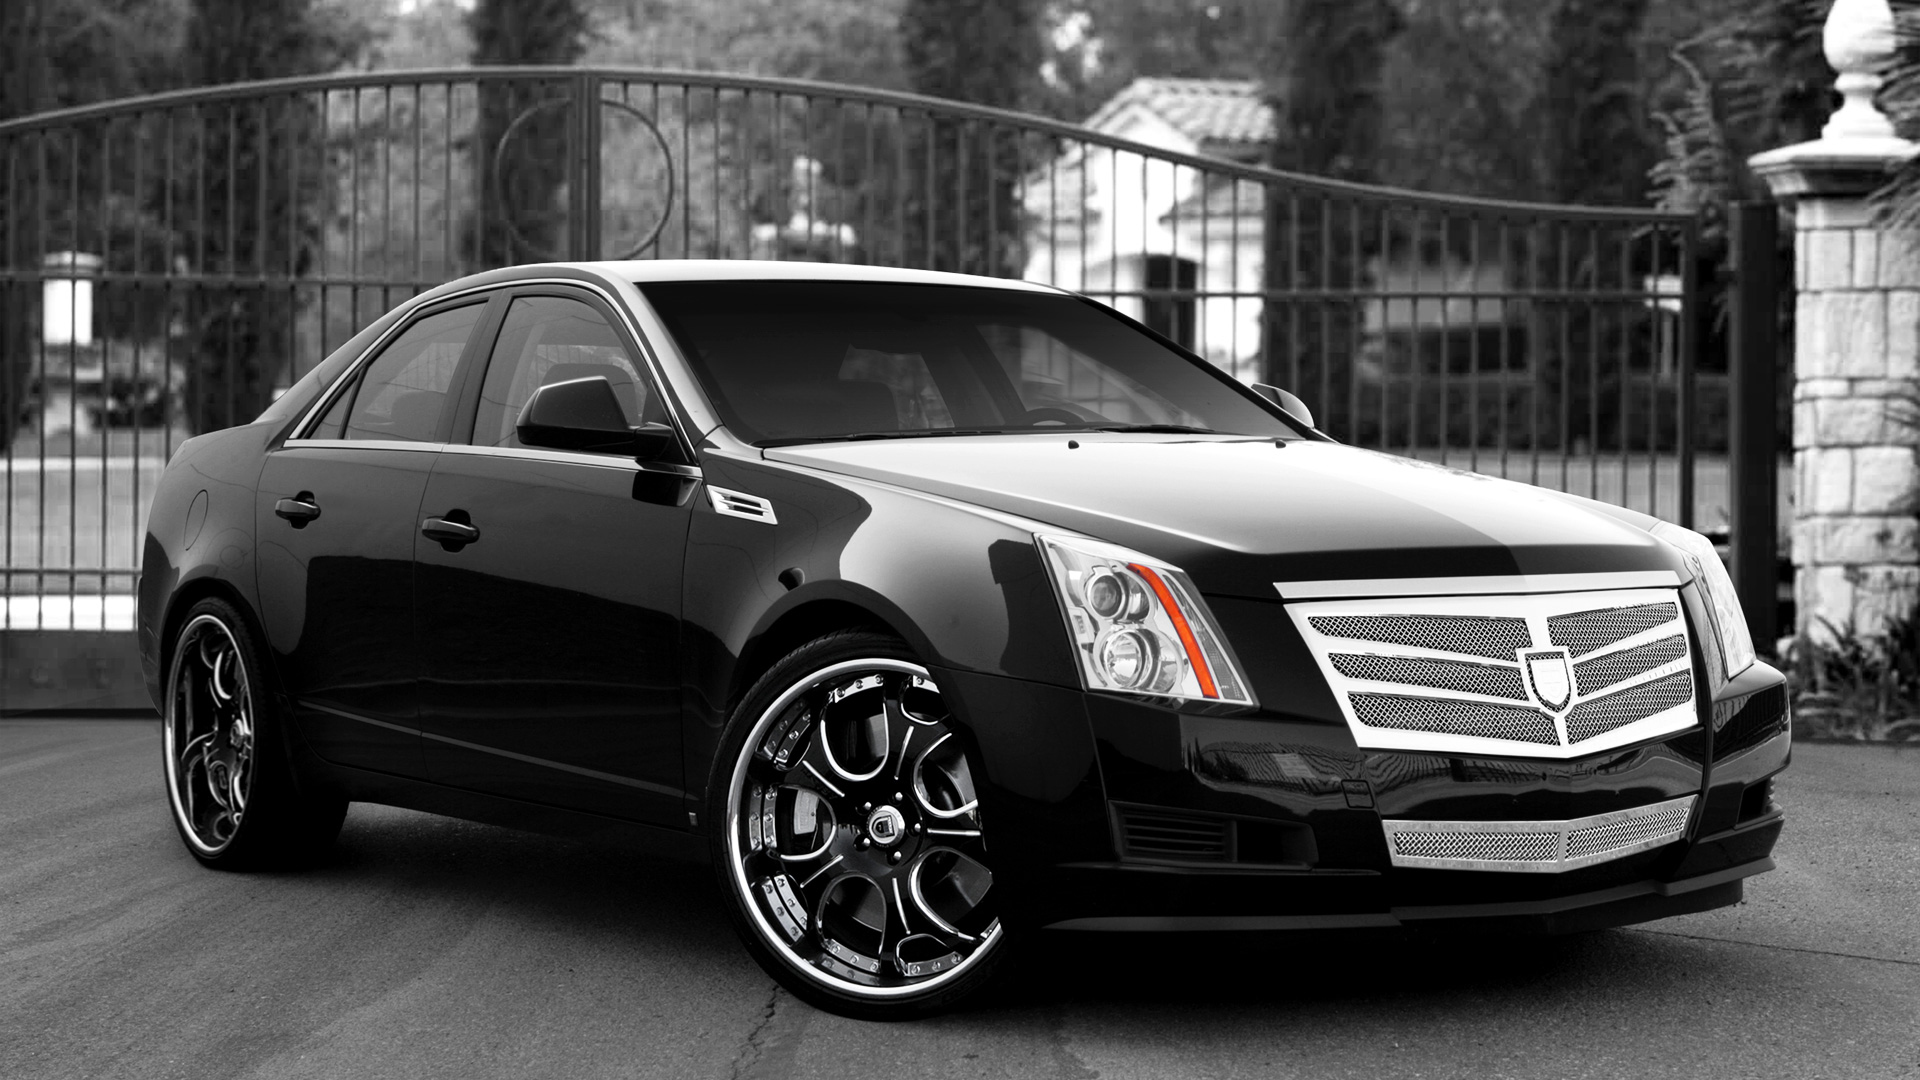 Latest Cadillac Escalade >> Cadillac CTS Wallpaper High Definition #1542 Wallpaper ...